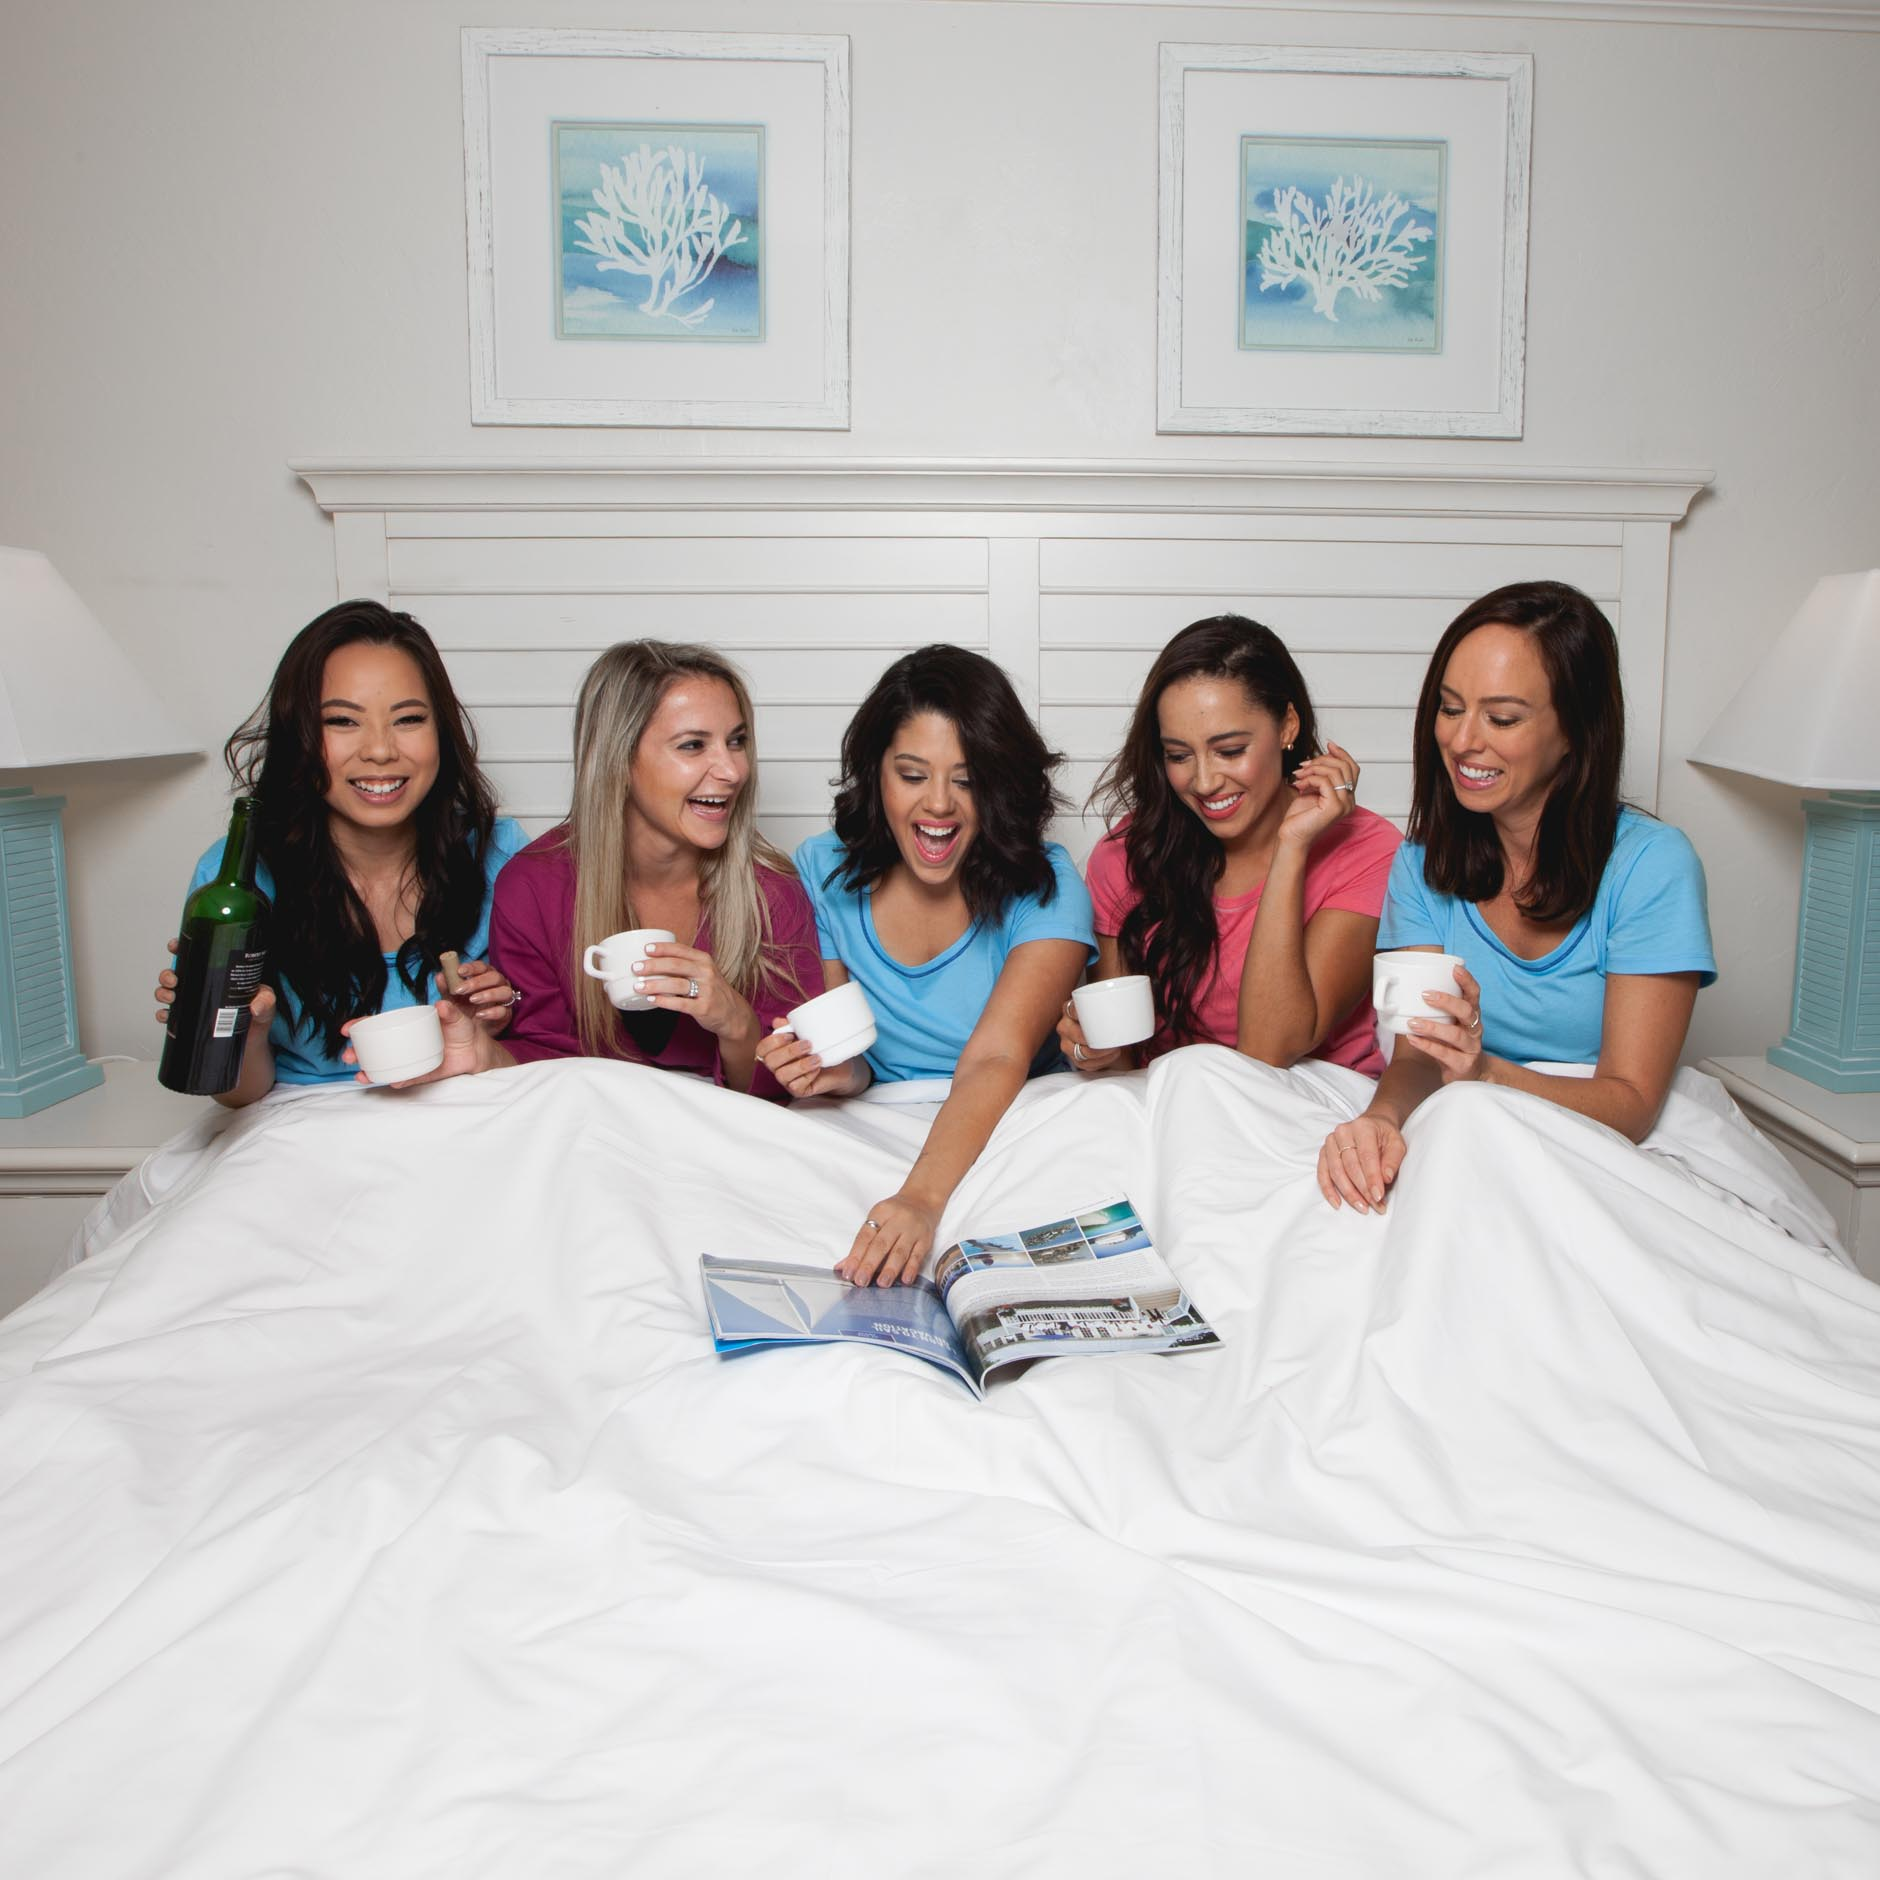 Lifestyle blogger Naty Michele having pajama party with other bloggers